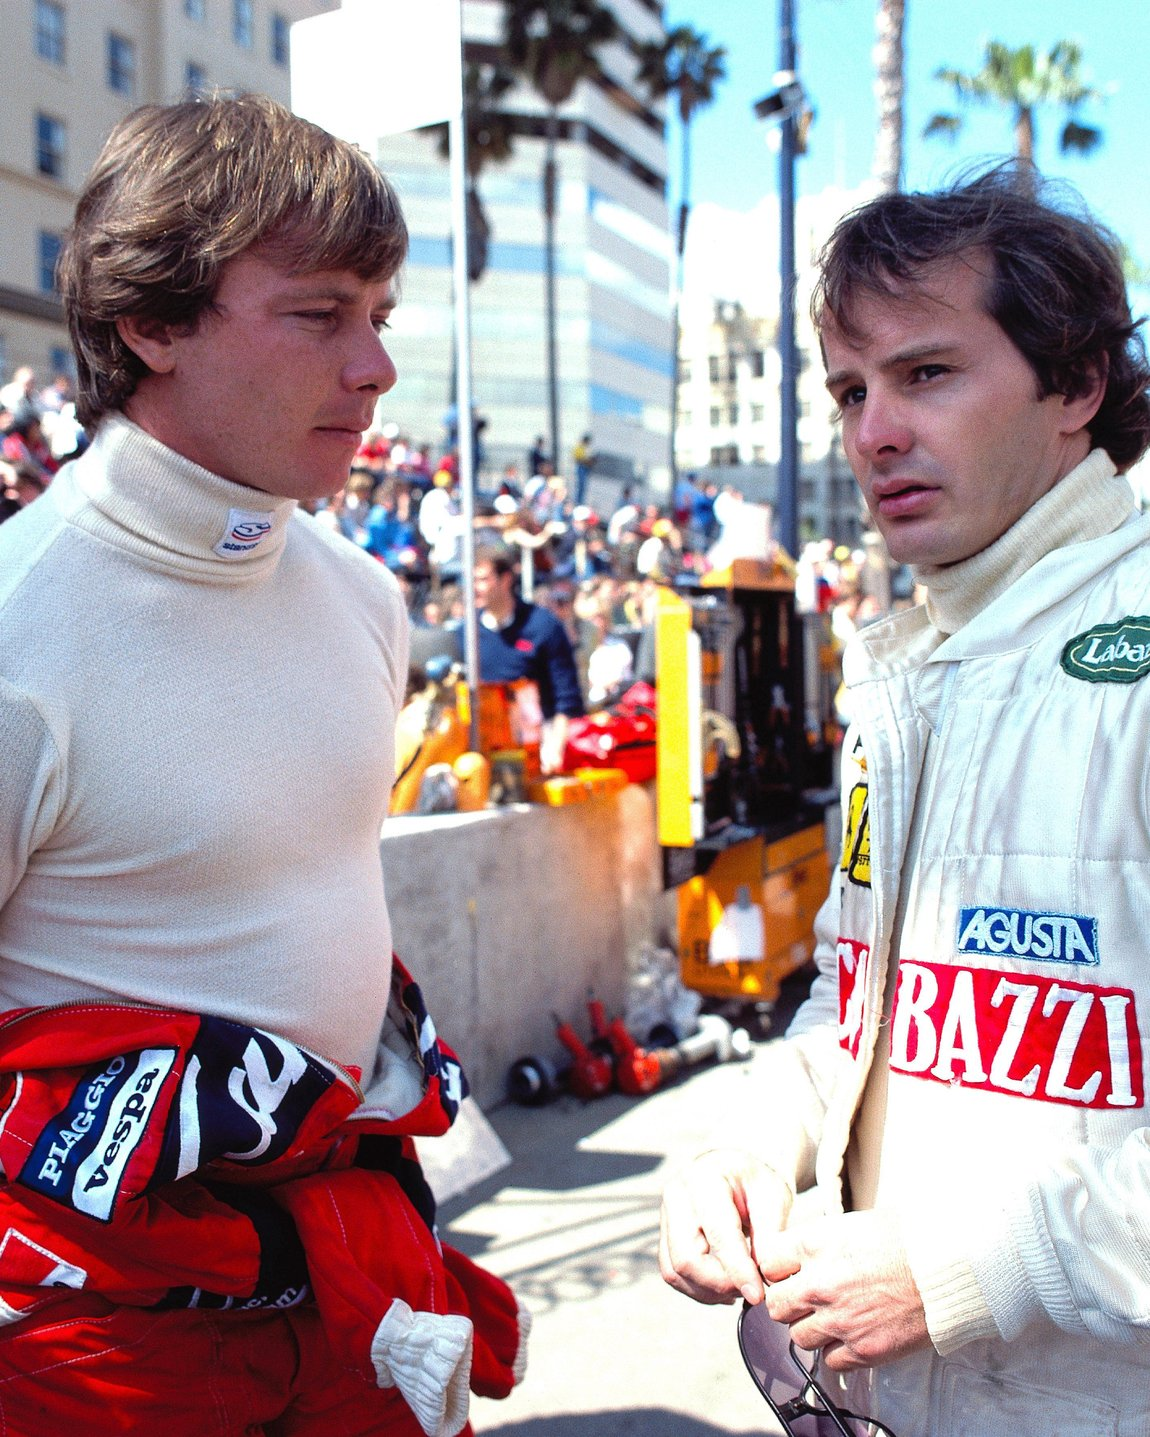 Ferrari team-mates Didier Pironi and Gilles Villeneuve, United States West Grand Prix, Long Beach, United States, 04 April 1982. (Photo by Rainer W. Schlegelmilch/Getty Images)